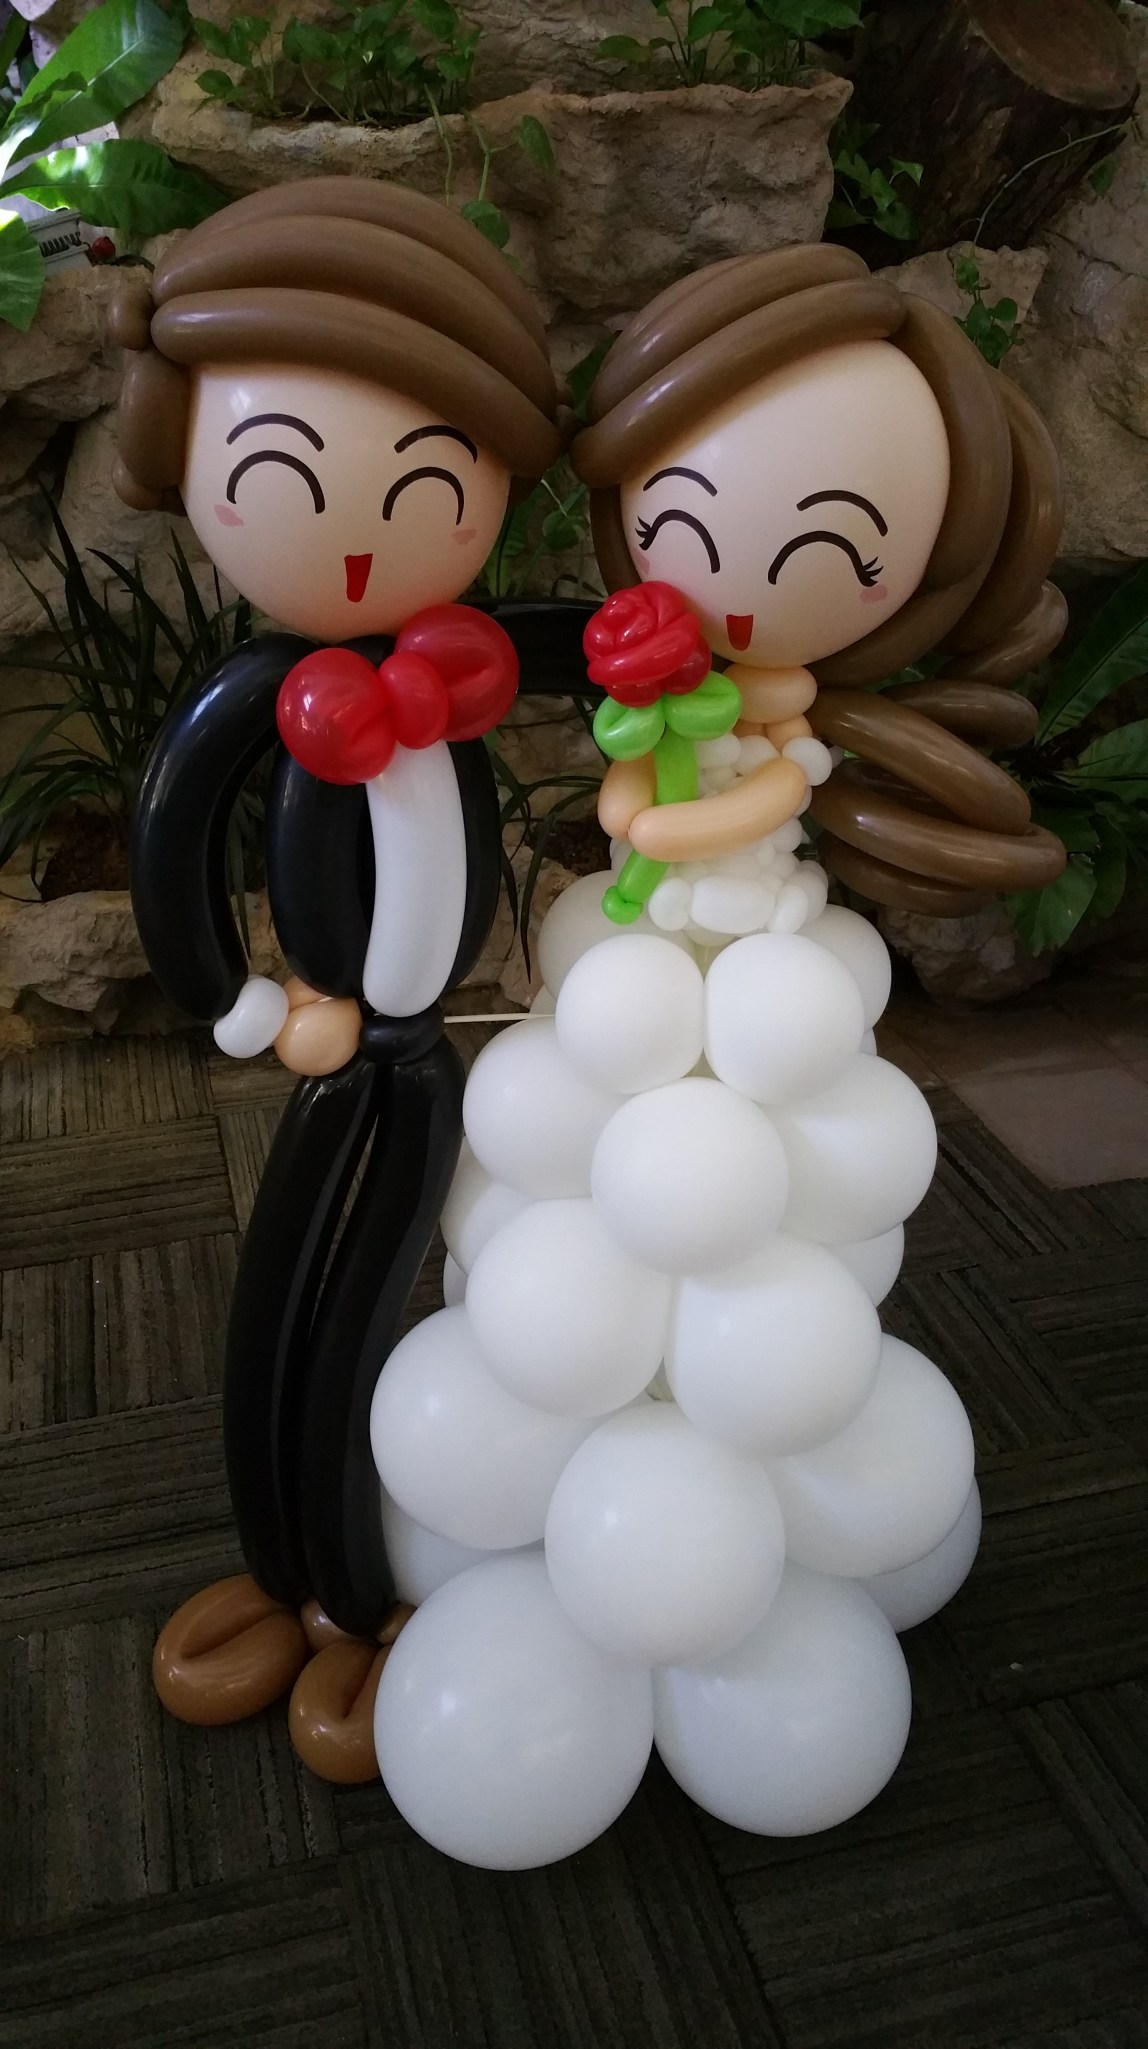 , Another wedding balloon decoration!, Singapore Balloon Decoration Services - Balloon Workshop and Balloon Sculpting